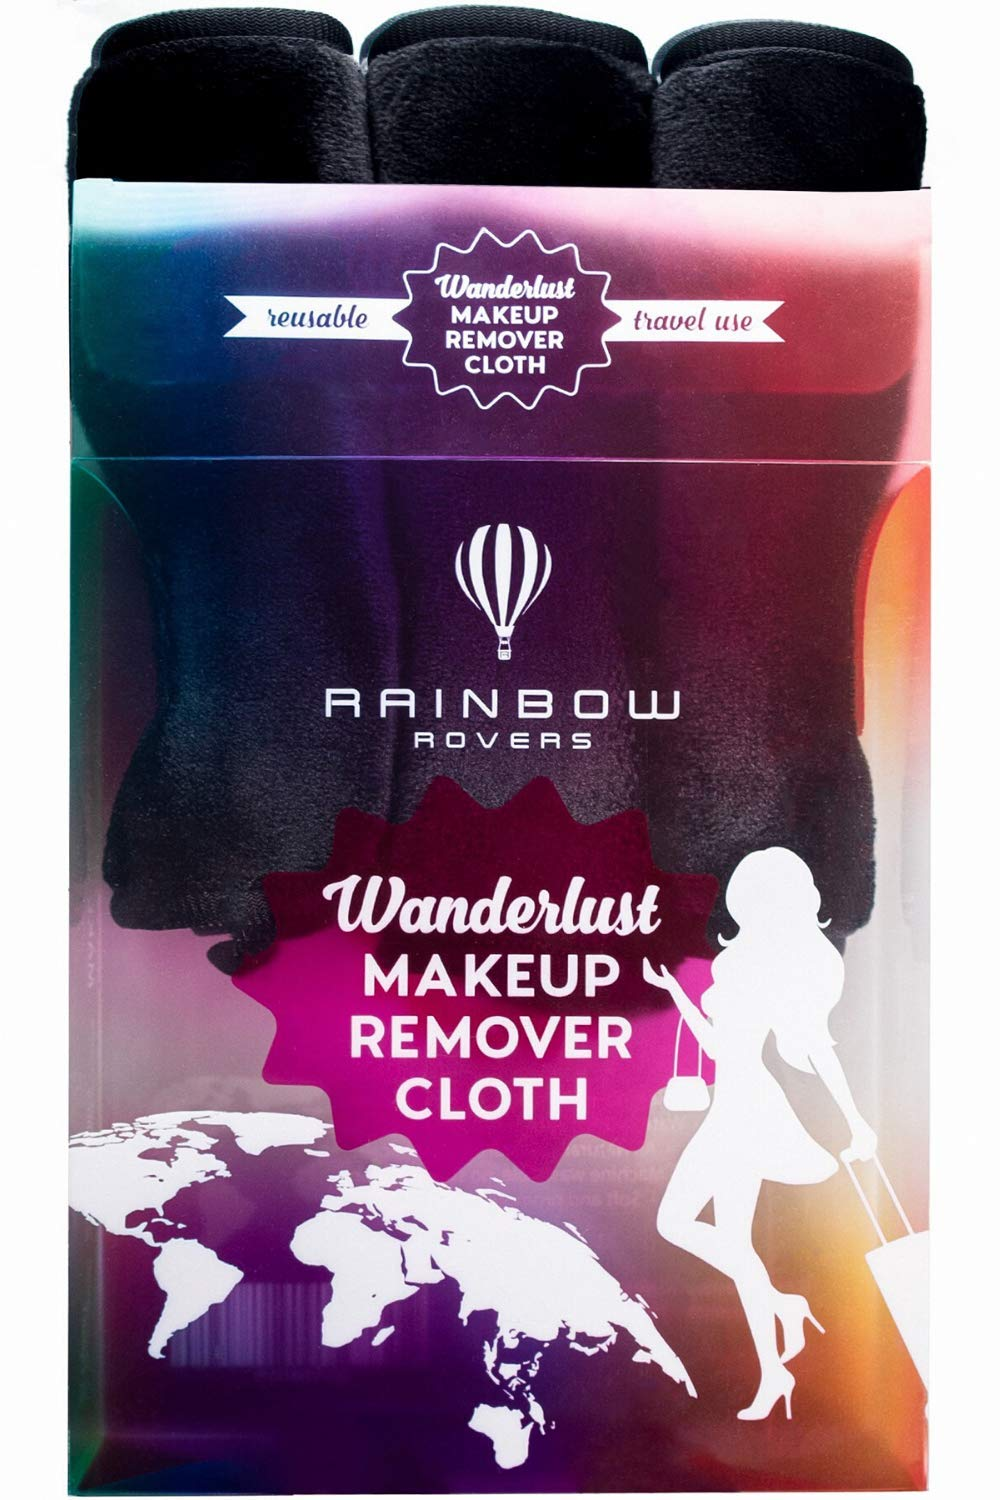 RAINBOW ROVERS Set of 3 Makeup Remover Cloths | Reusable & Ultra-fine Makeup Towels | Suitable for All Skin Types | Removes Makeup with Water | Free Bonus Waterproof Travel Bag | Chic Black